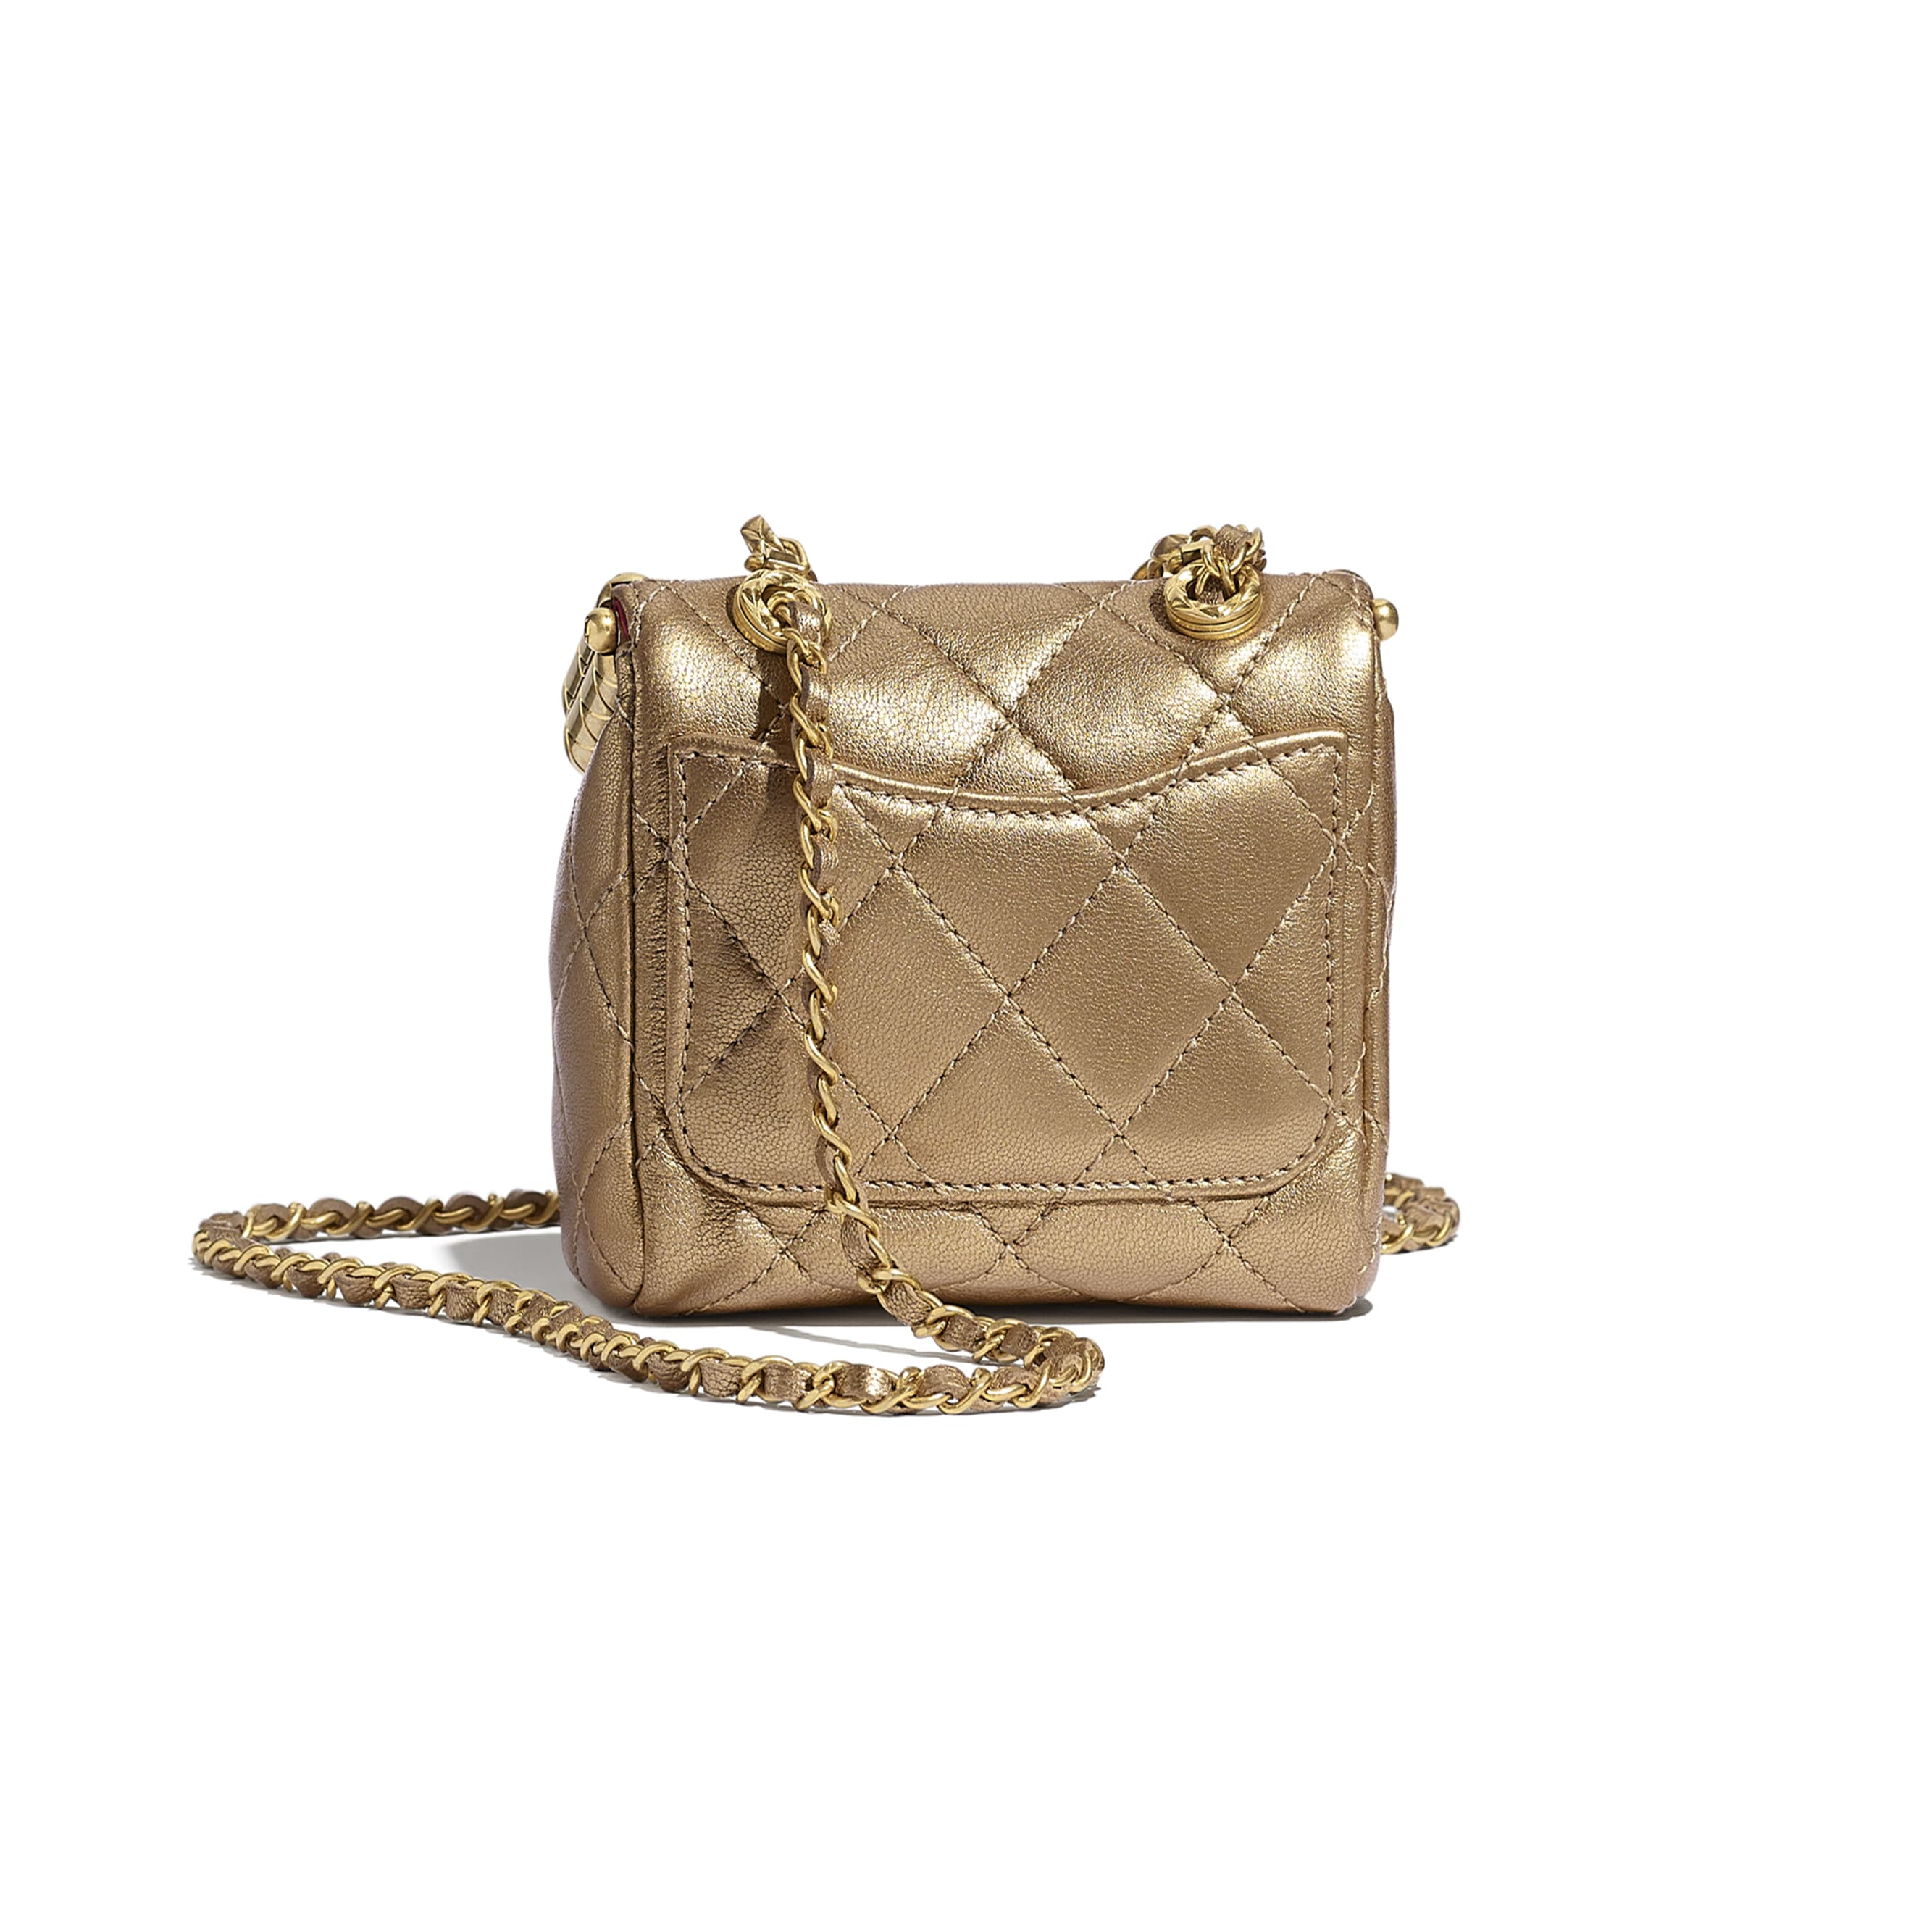 Small Kiss-Lock Bag - Gold - Metallic Lambskin & Gold Metal - CHANEL - Alternative view - see standard sized version